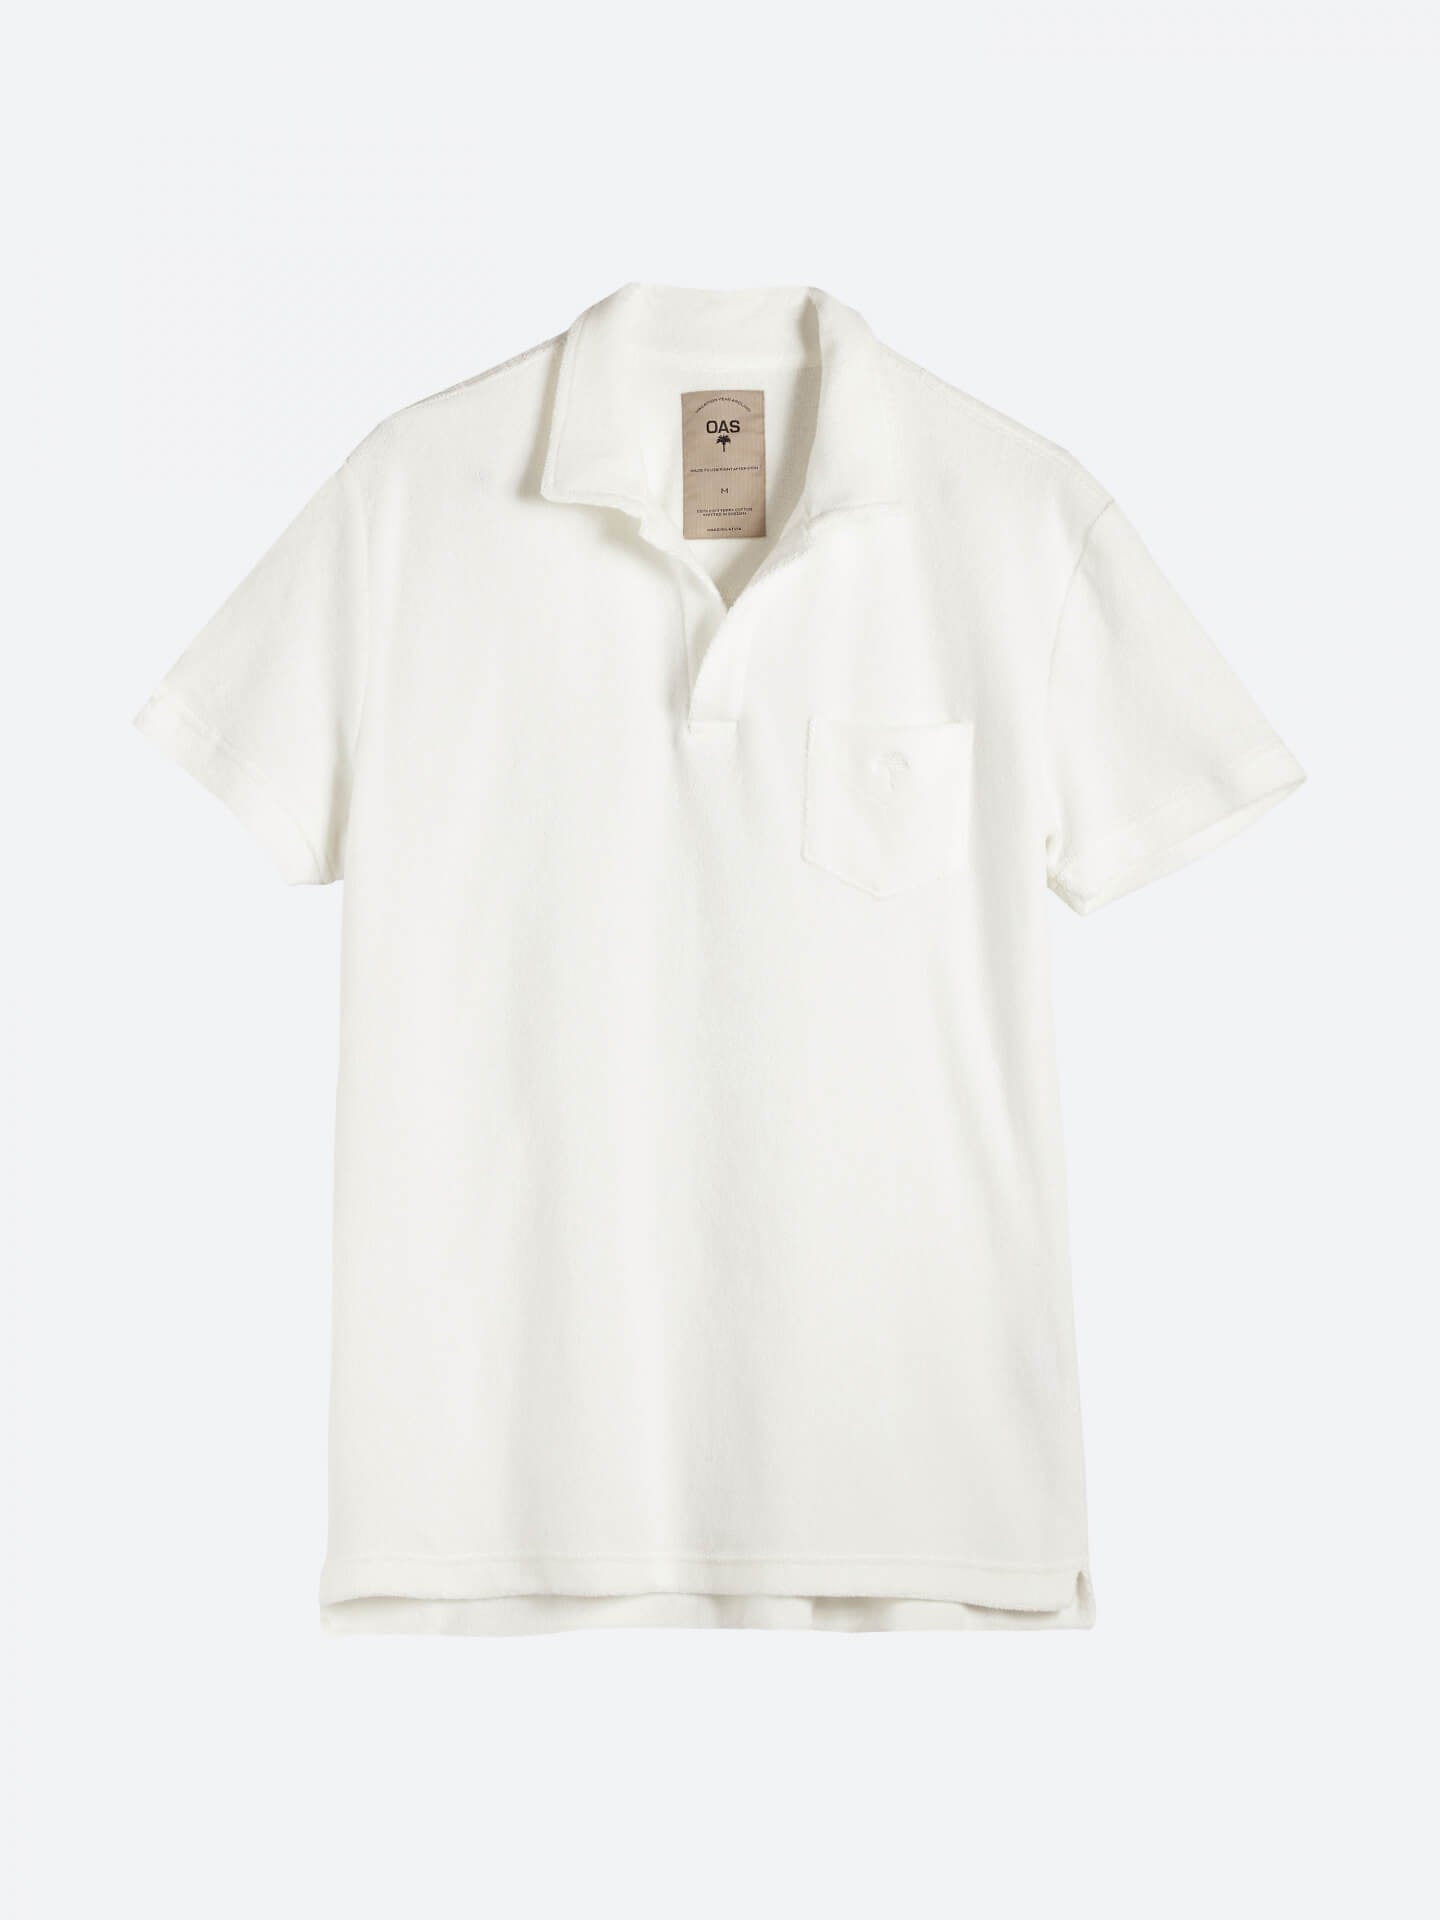 Oas Solid White Terry Shirt - Mojo Independent Store